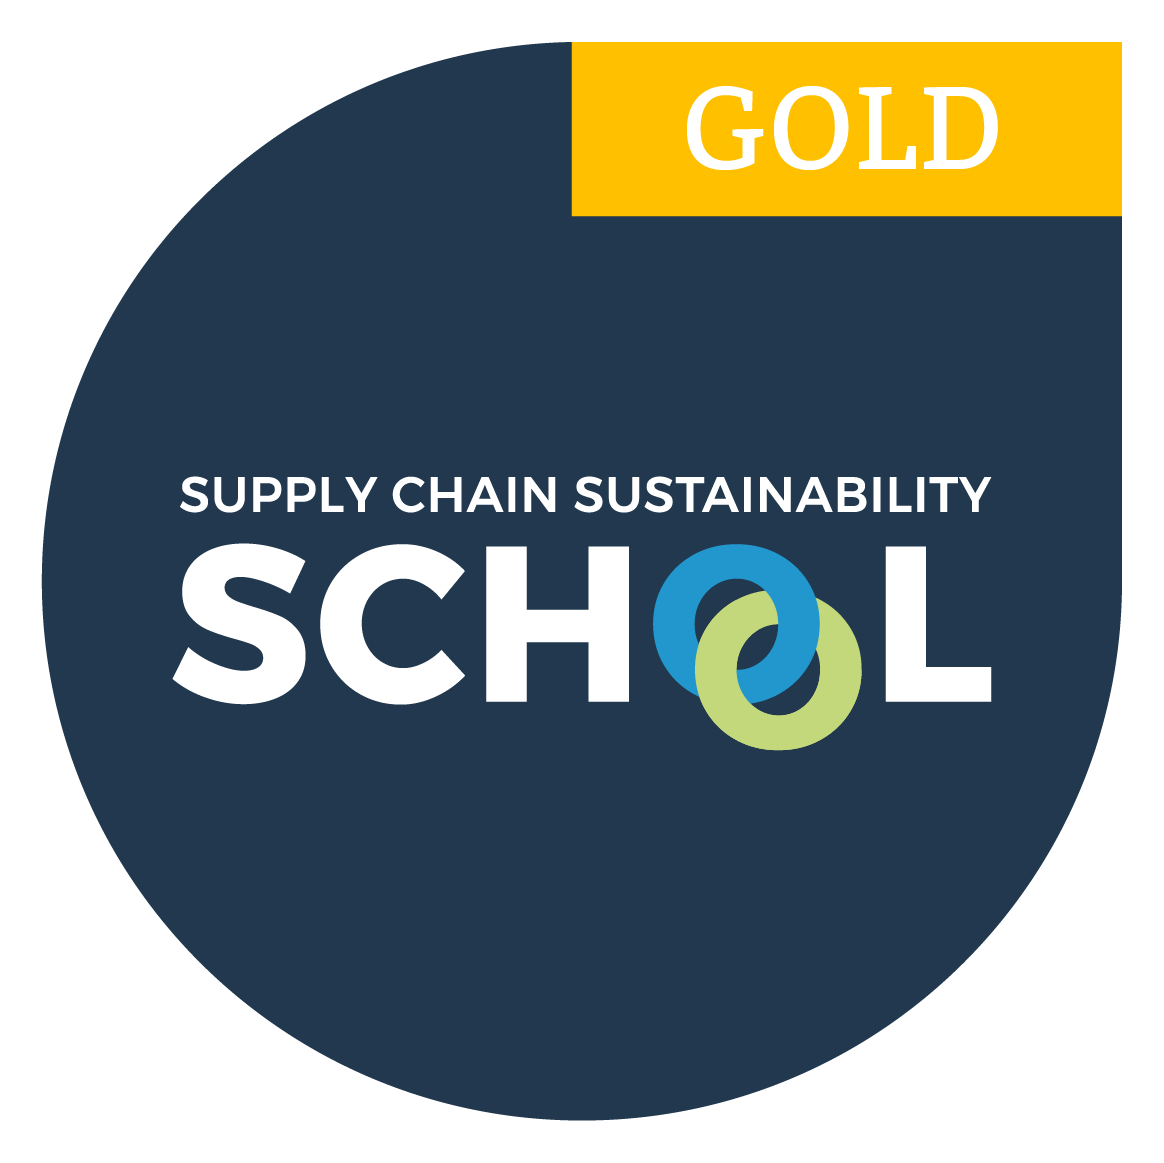 New Logo for Supply Chain Sustainability School